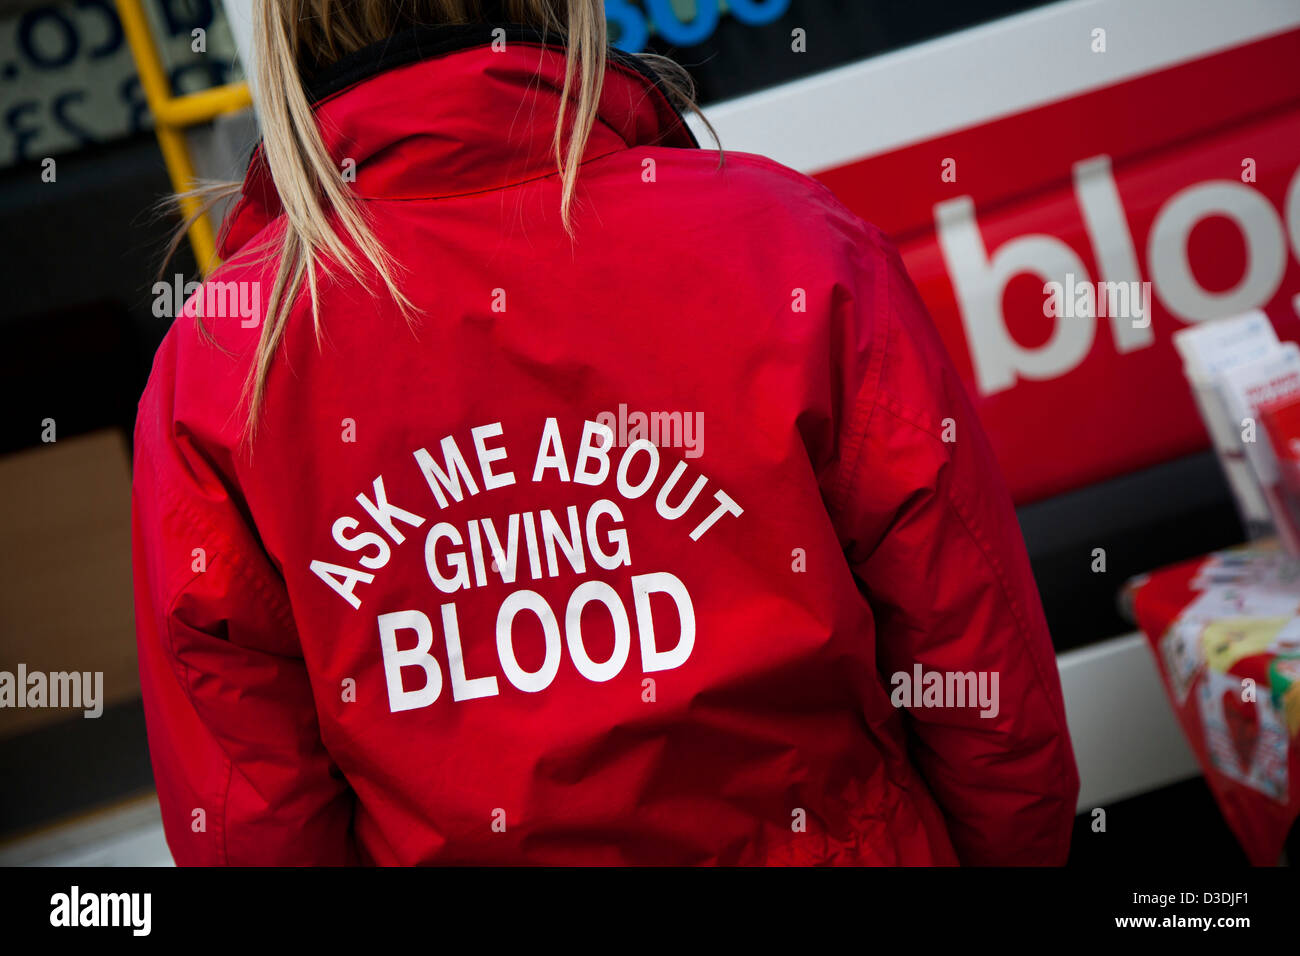 Ask me about giving blood_ Blood Transfusion Campaign in Darlington City Centre, Yorkshire, UK - Stock Image